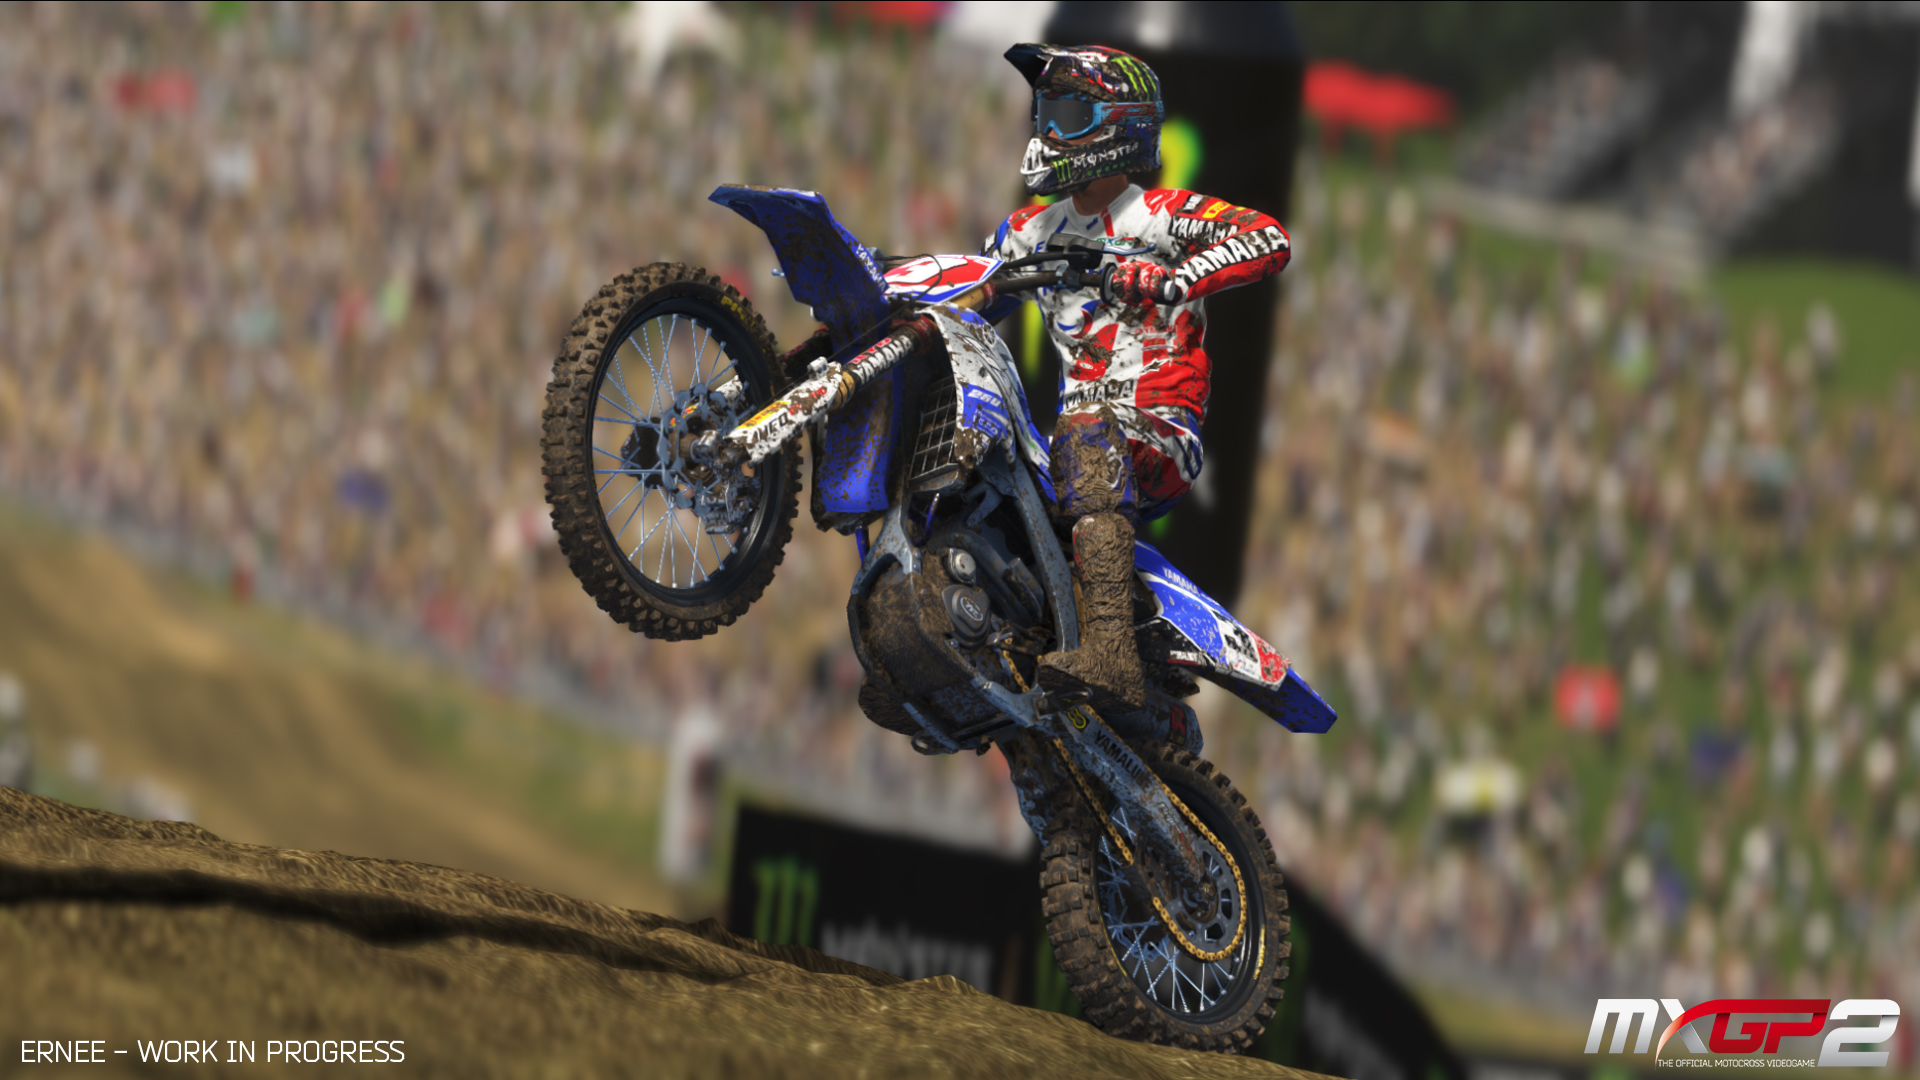 MXGP2: The Official Motocross Videogame image 1